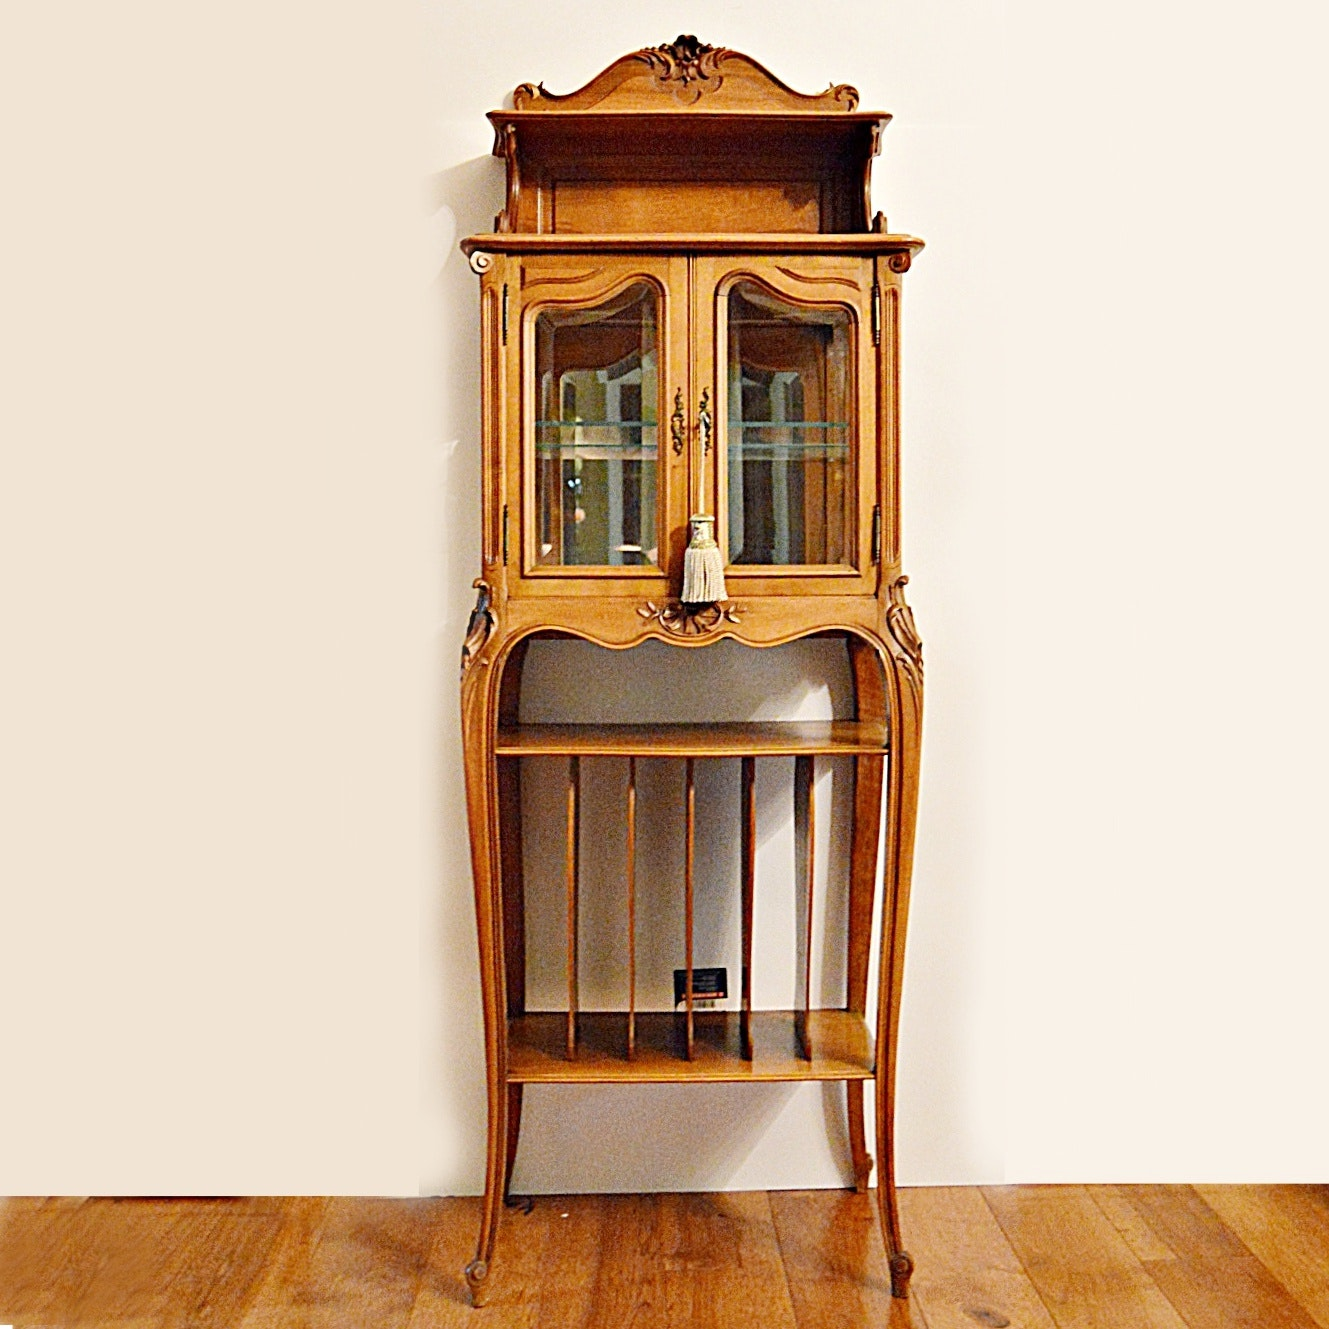 Antique Art Nouveau Vitrine in Cherry